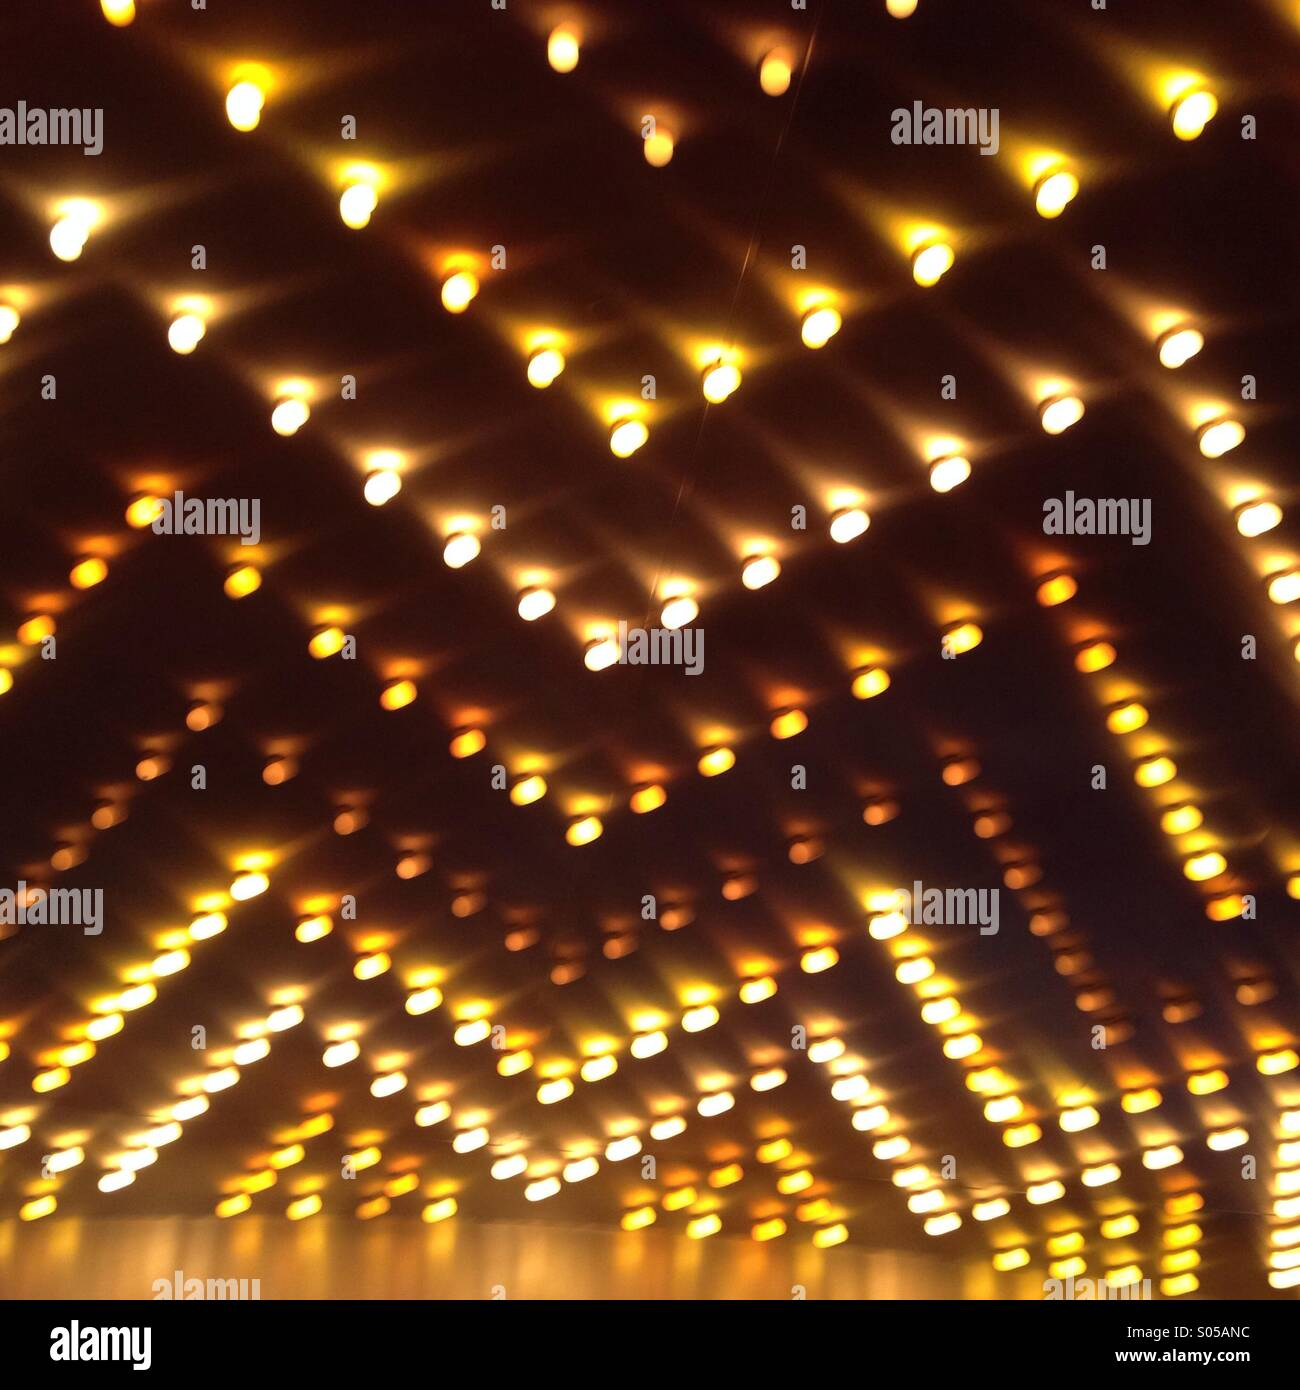 Zig-zag pattern of yellow lights on a theater marquee - Stock Image